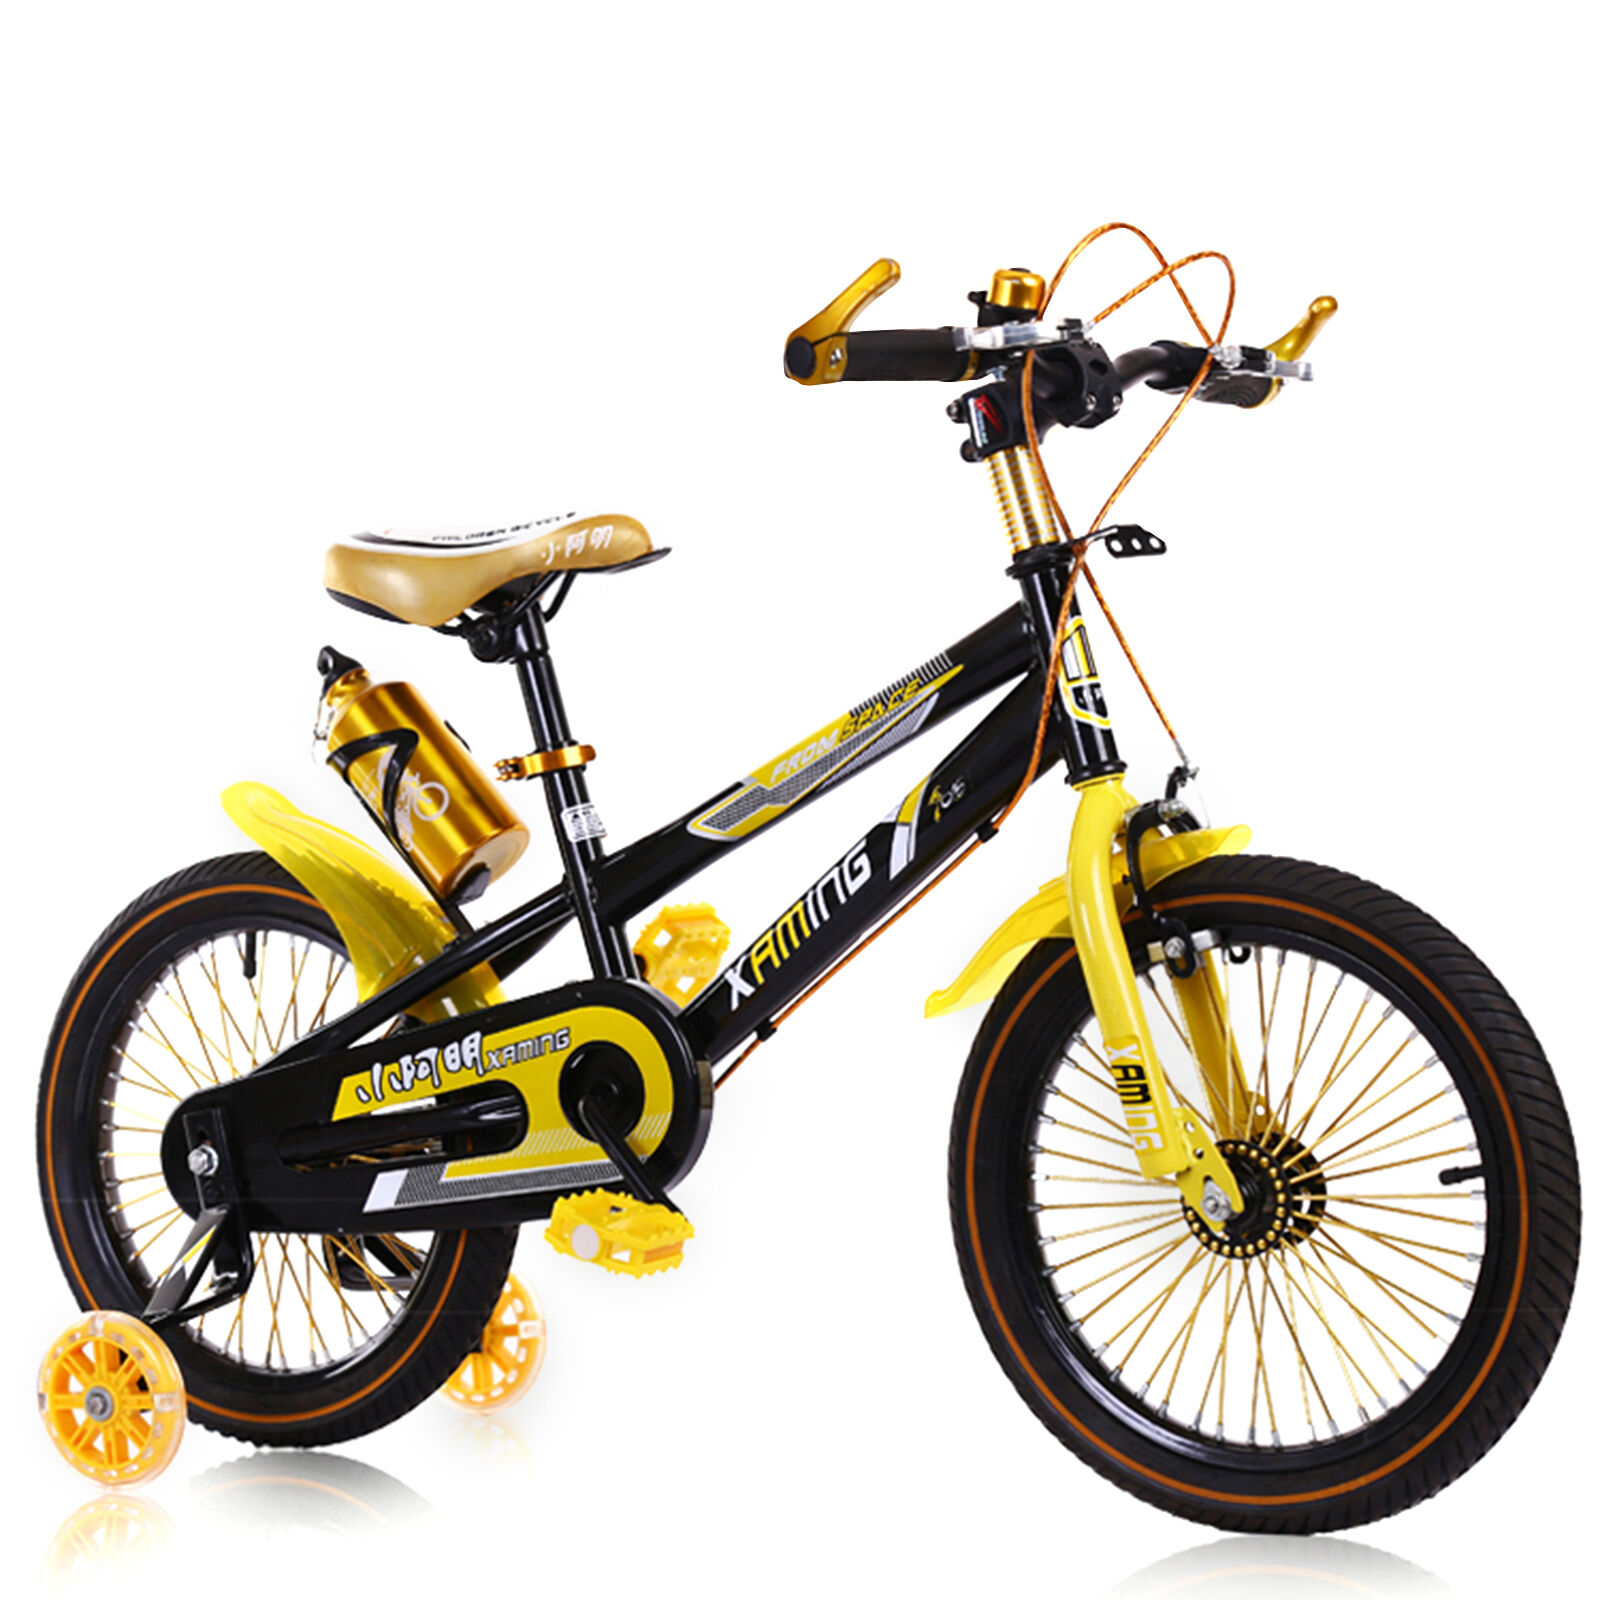 12 zoll kinderfahrrad fahrrad jungen cityrad paw patrol 2. Black Bedroom Furniture Sets. Home Design Ideas